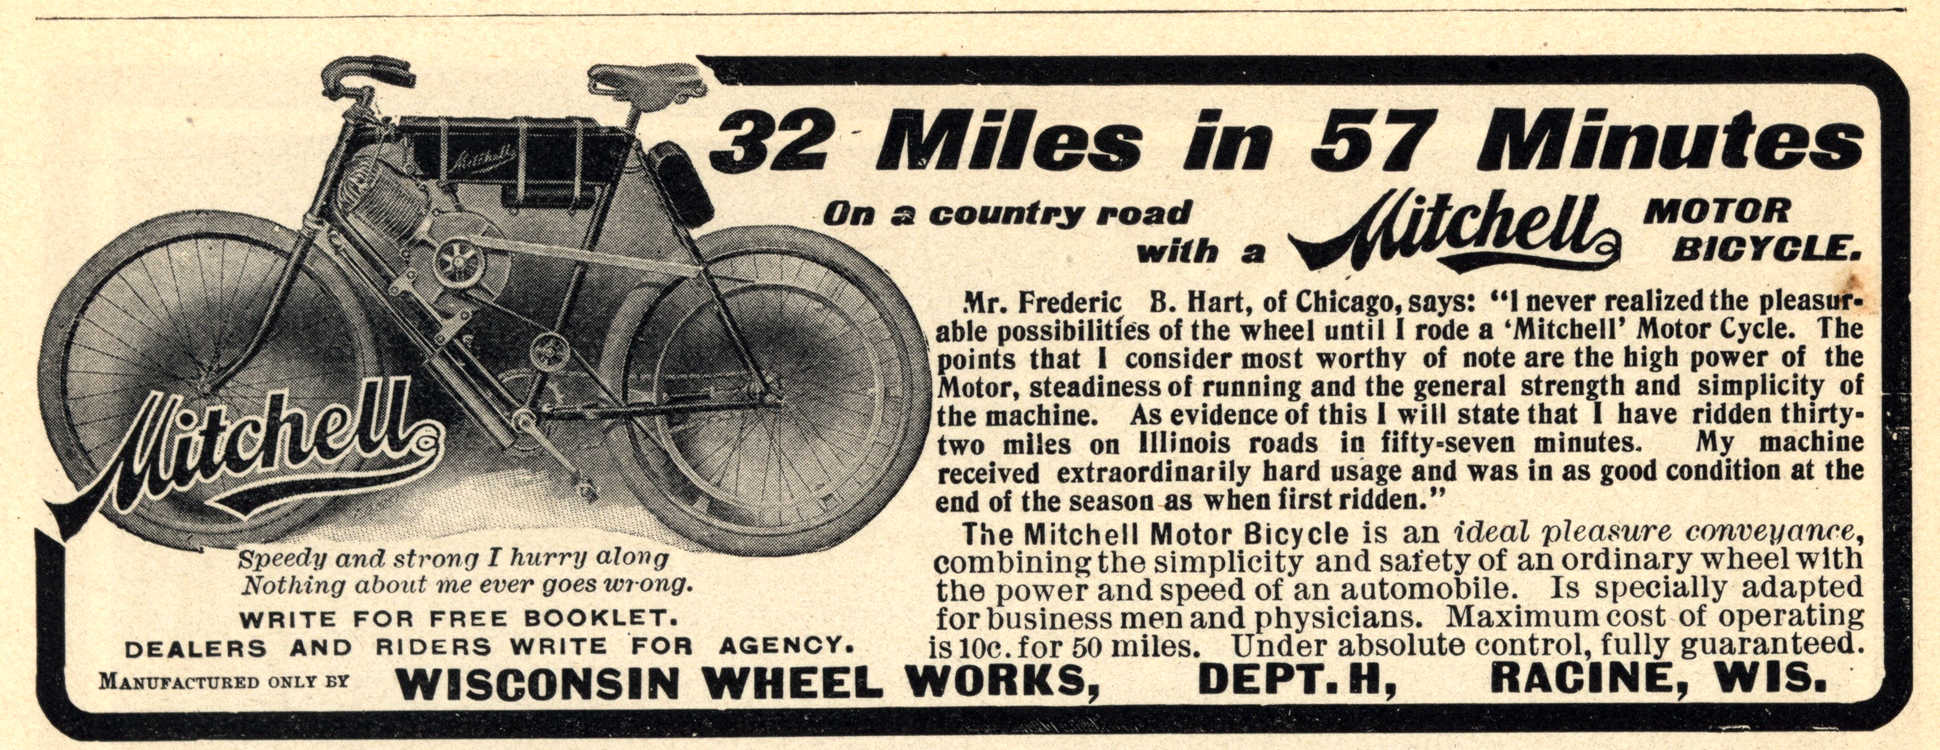 Motorcycles Mitchell 1902 0001